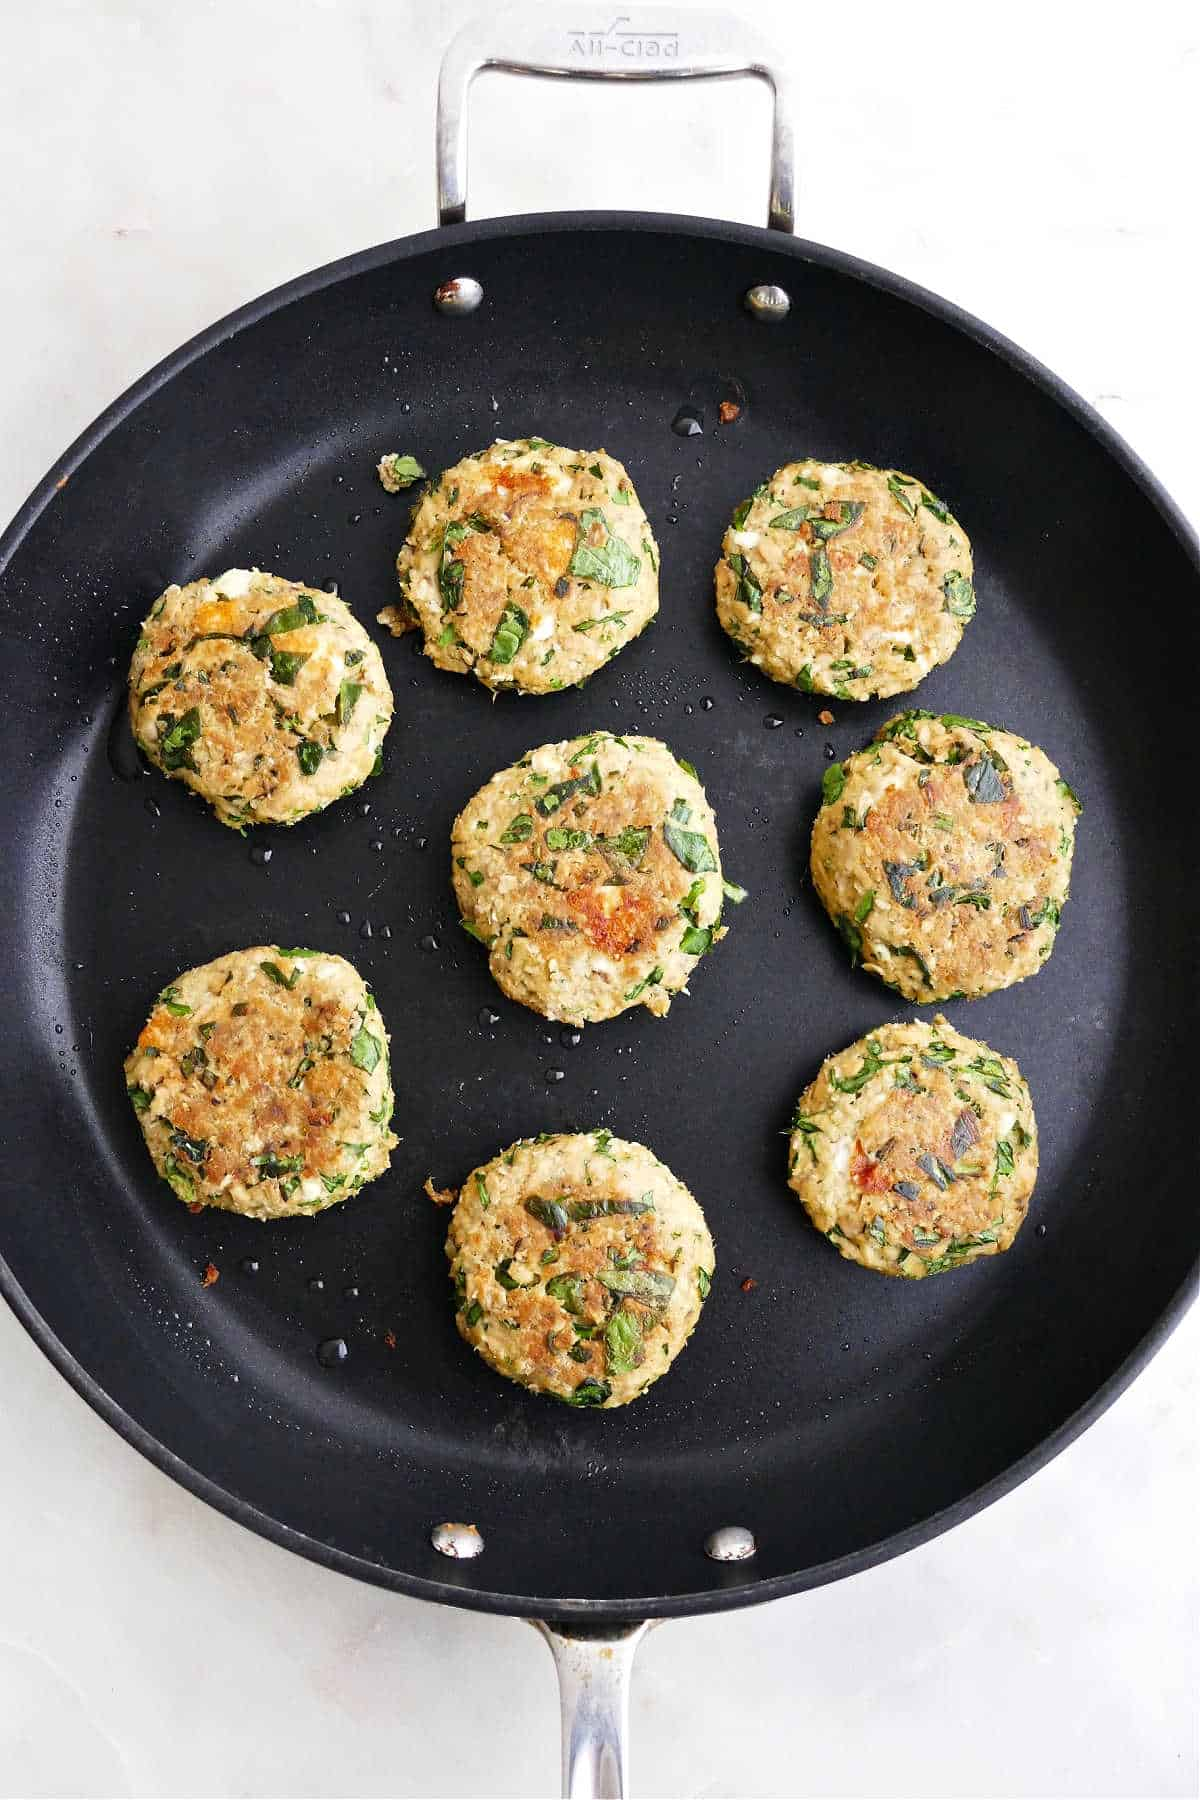 eight cooked spinach feta salmon burgers in a large black skillet on a counter